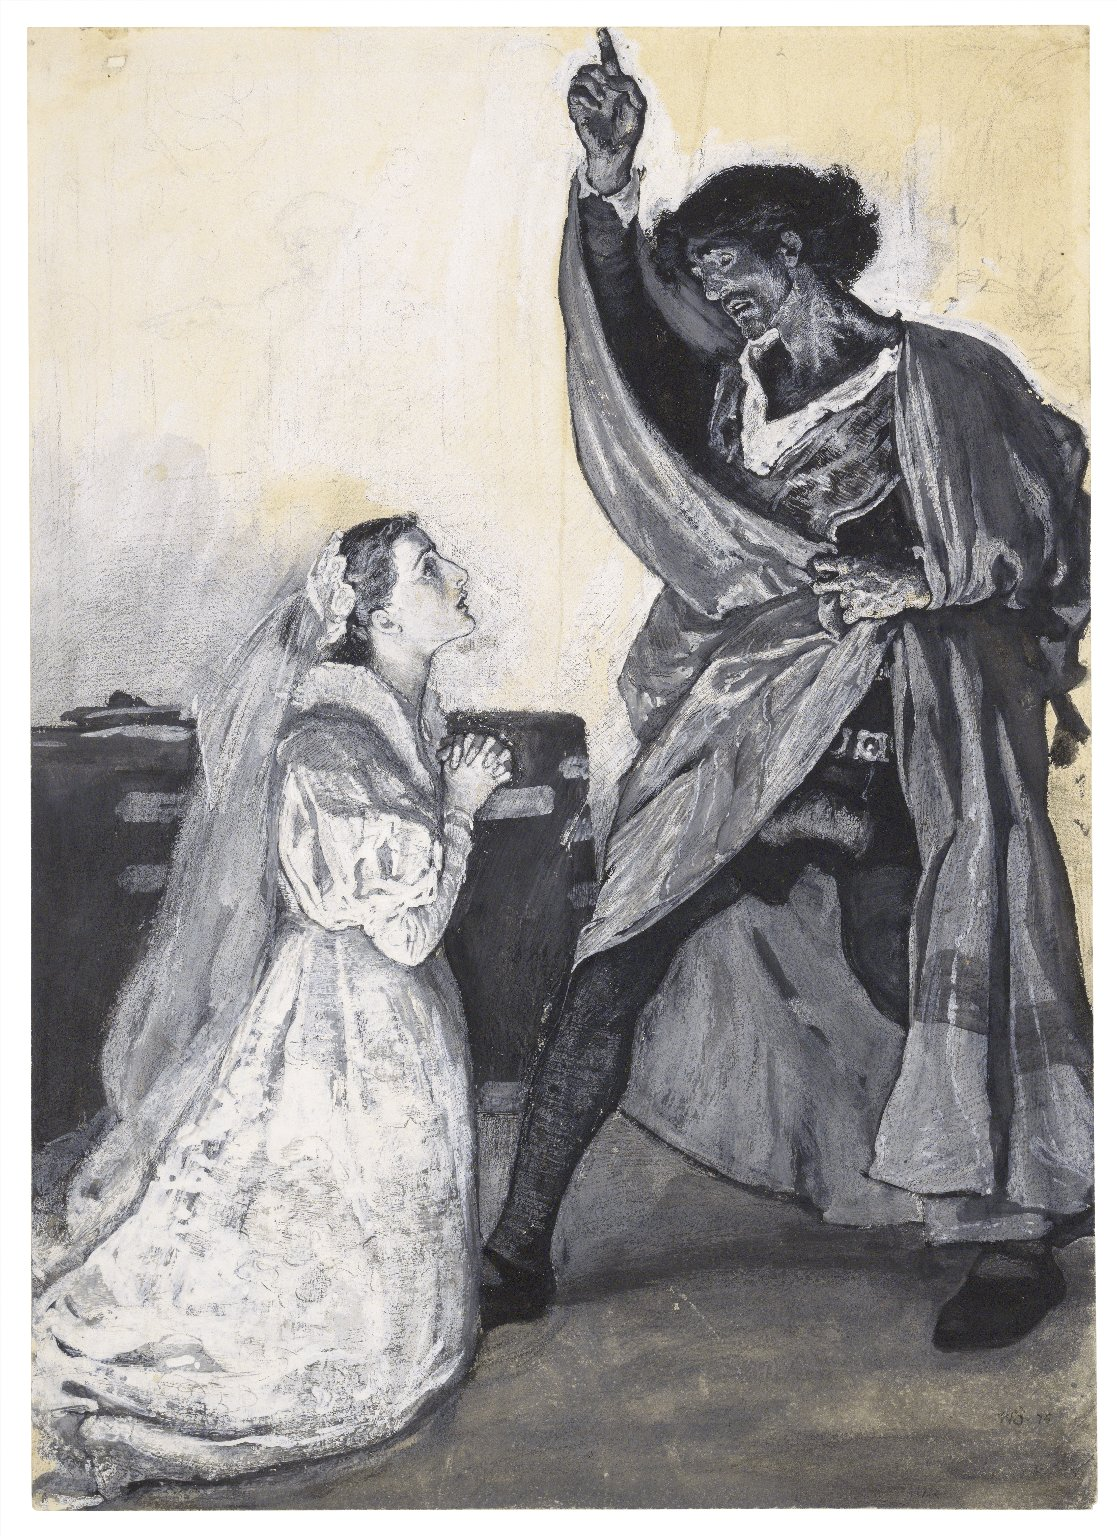 [Othello, Mr. Irving and Miss Bateman performing at the Lyceum, act IV, scene 2] [graphic] / W.S. '76.